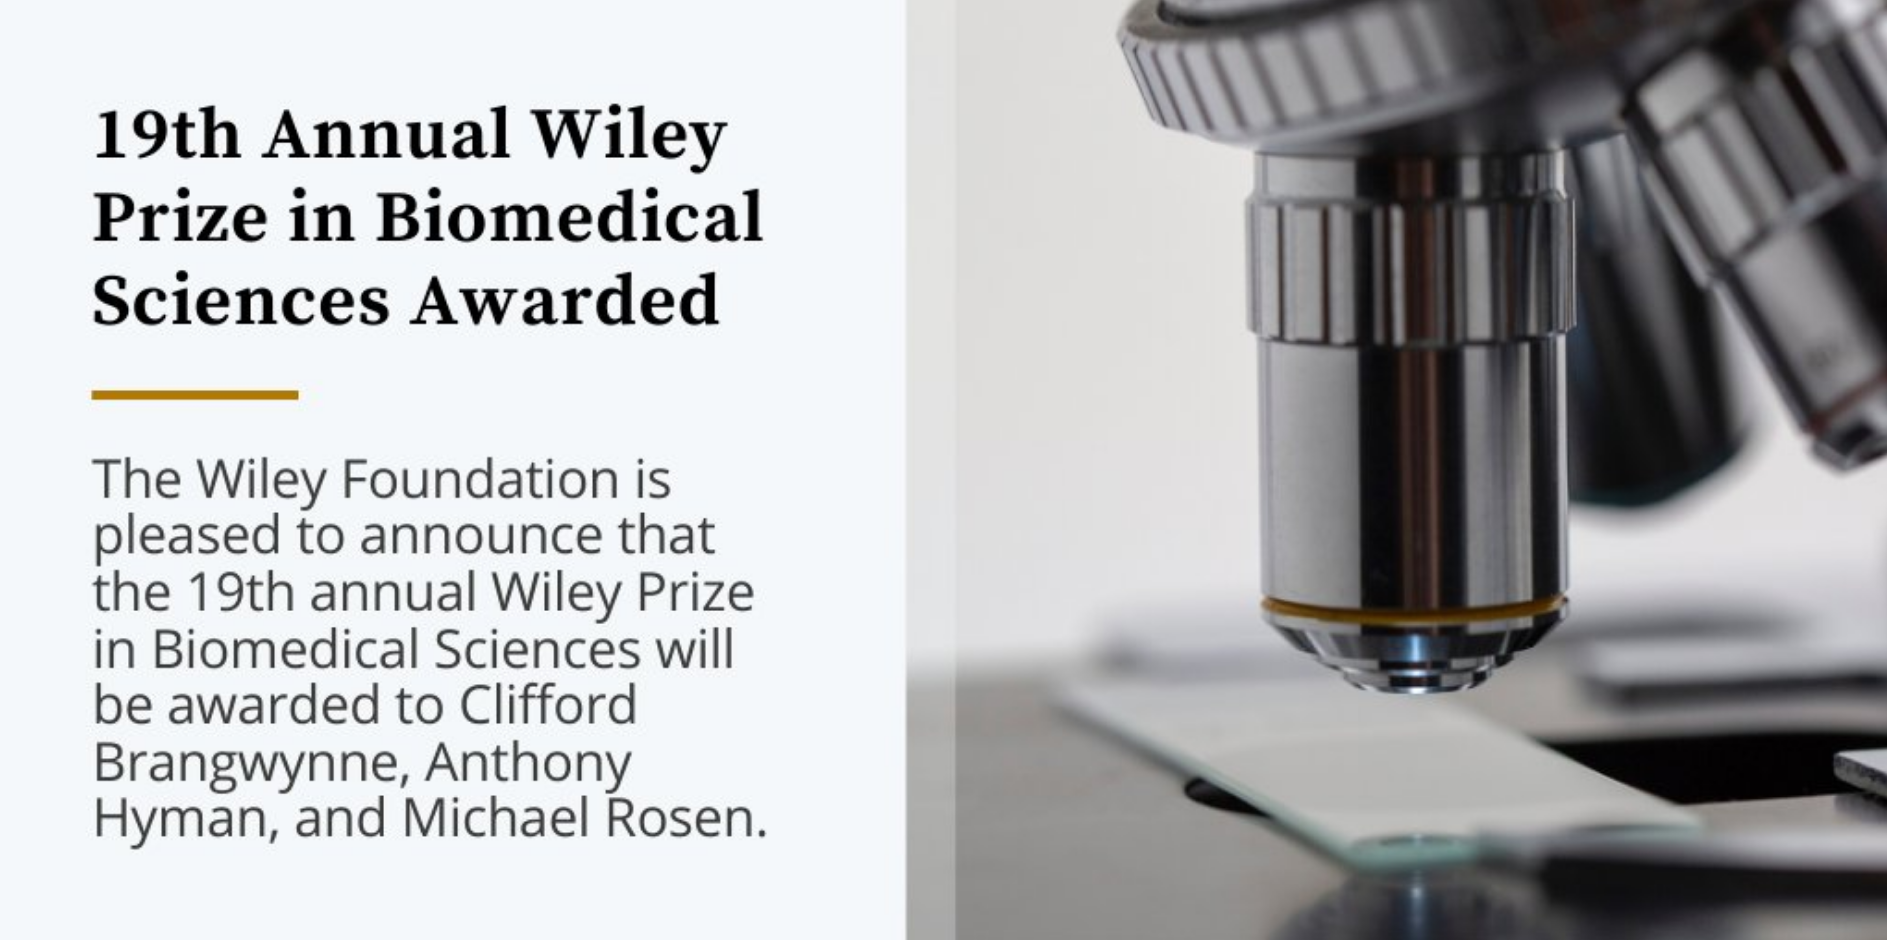 2020 Wiley Prize in Biomolecular Sciences for Anthony Hyman